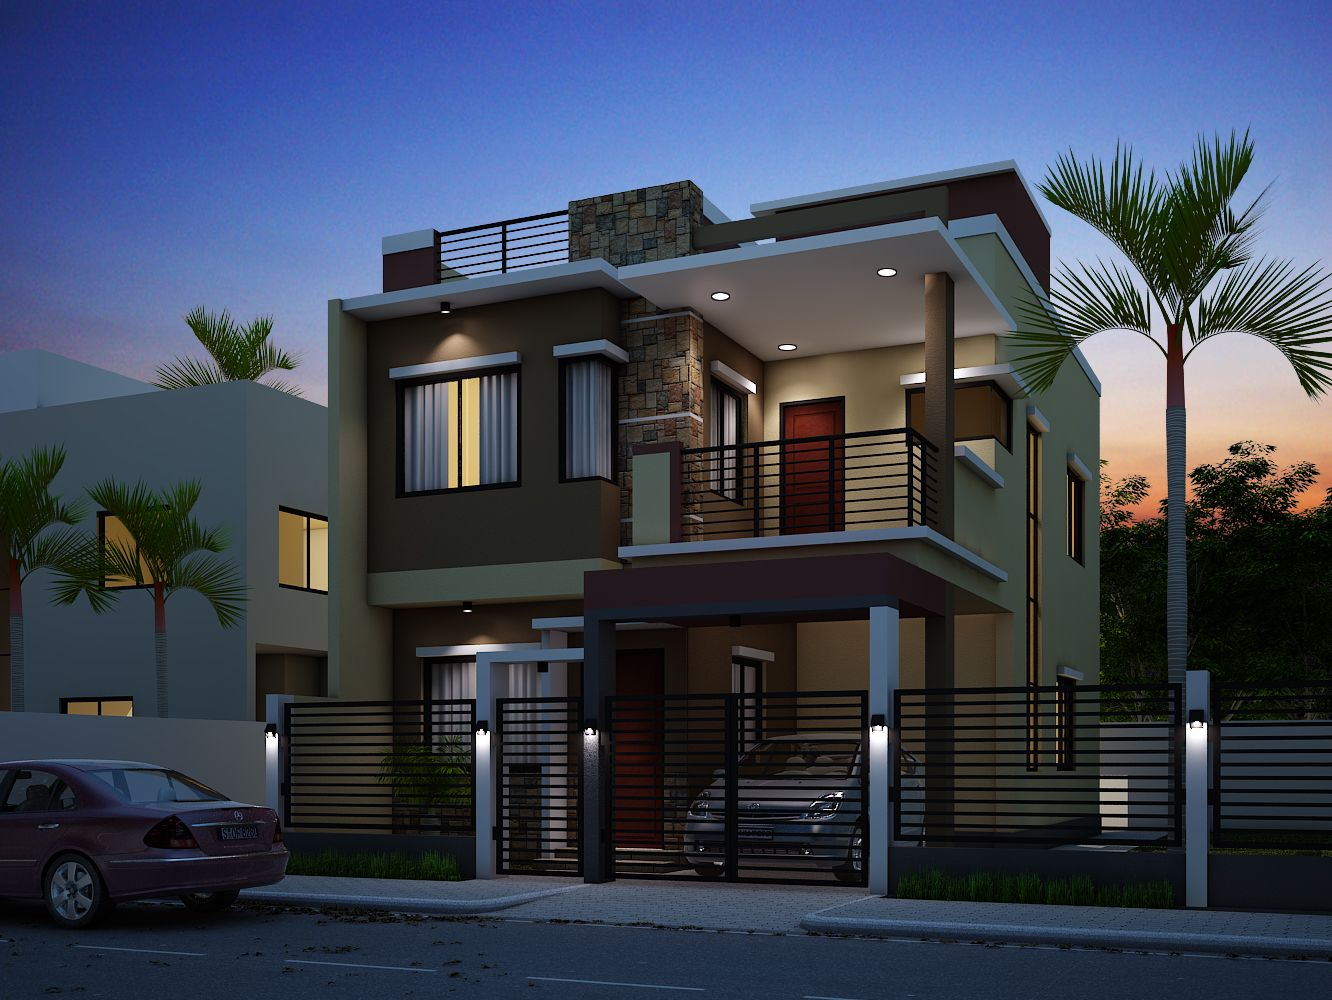 Did You Know That This Small Modern House Design Has 4 Bedrooms Yes With Only Less 100 Sq M To House Designs Exterior 2 Storey House Design Residential House